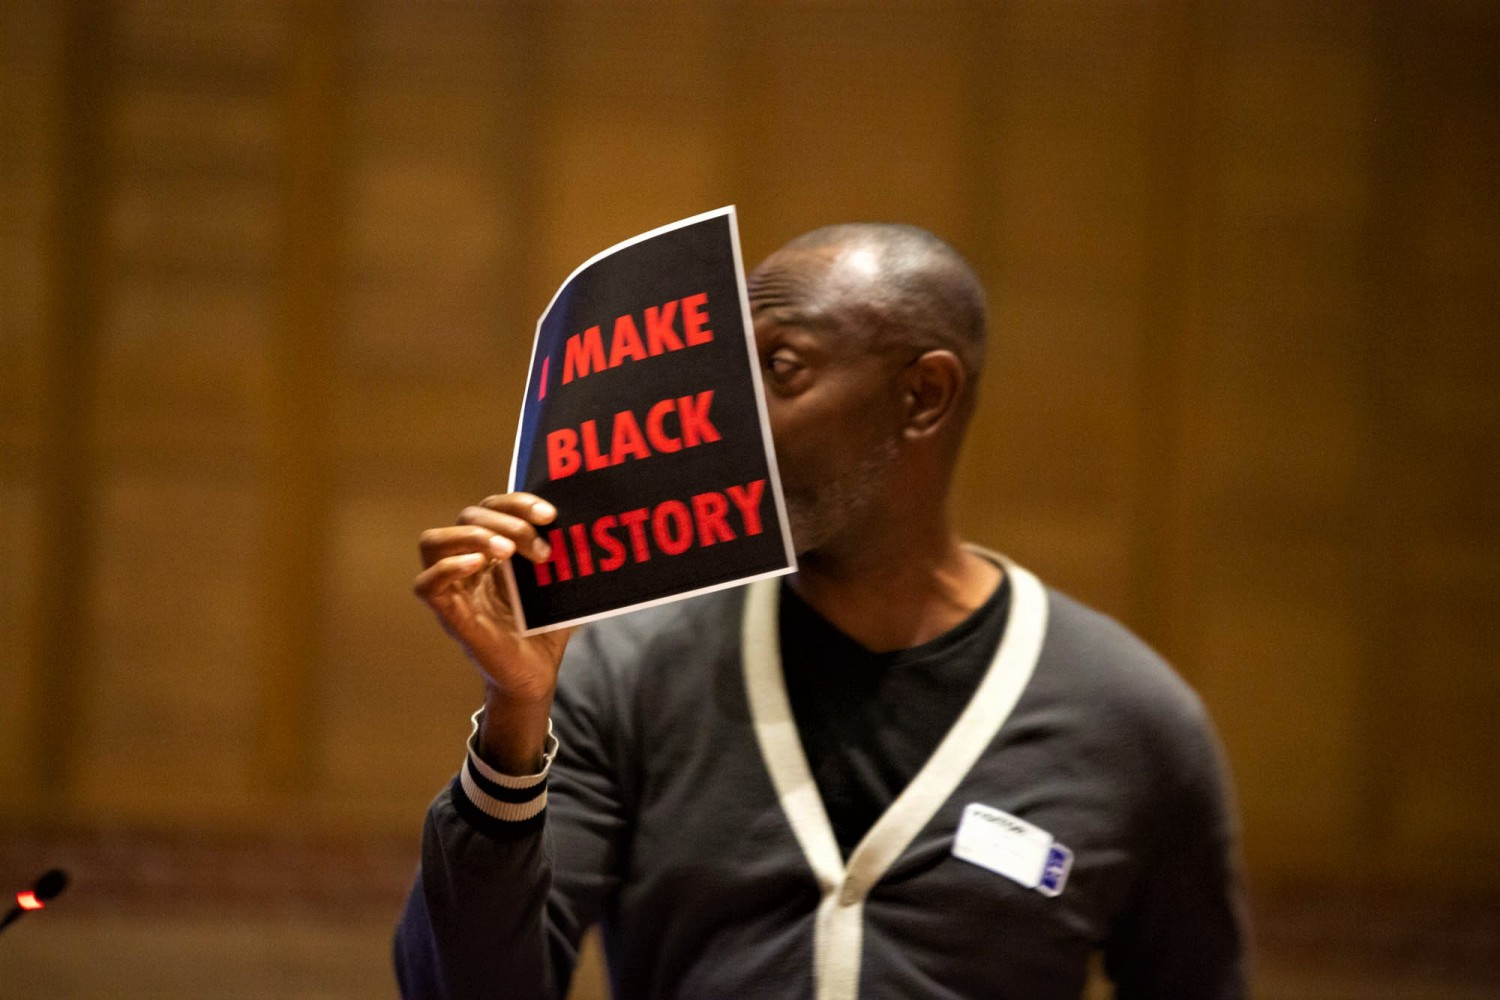 Despite PDSB's admission of harm it's done to Black students, mediation breaks down; two trustees call for province to step in again